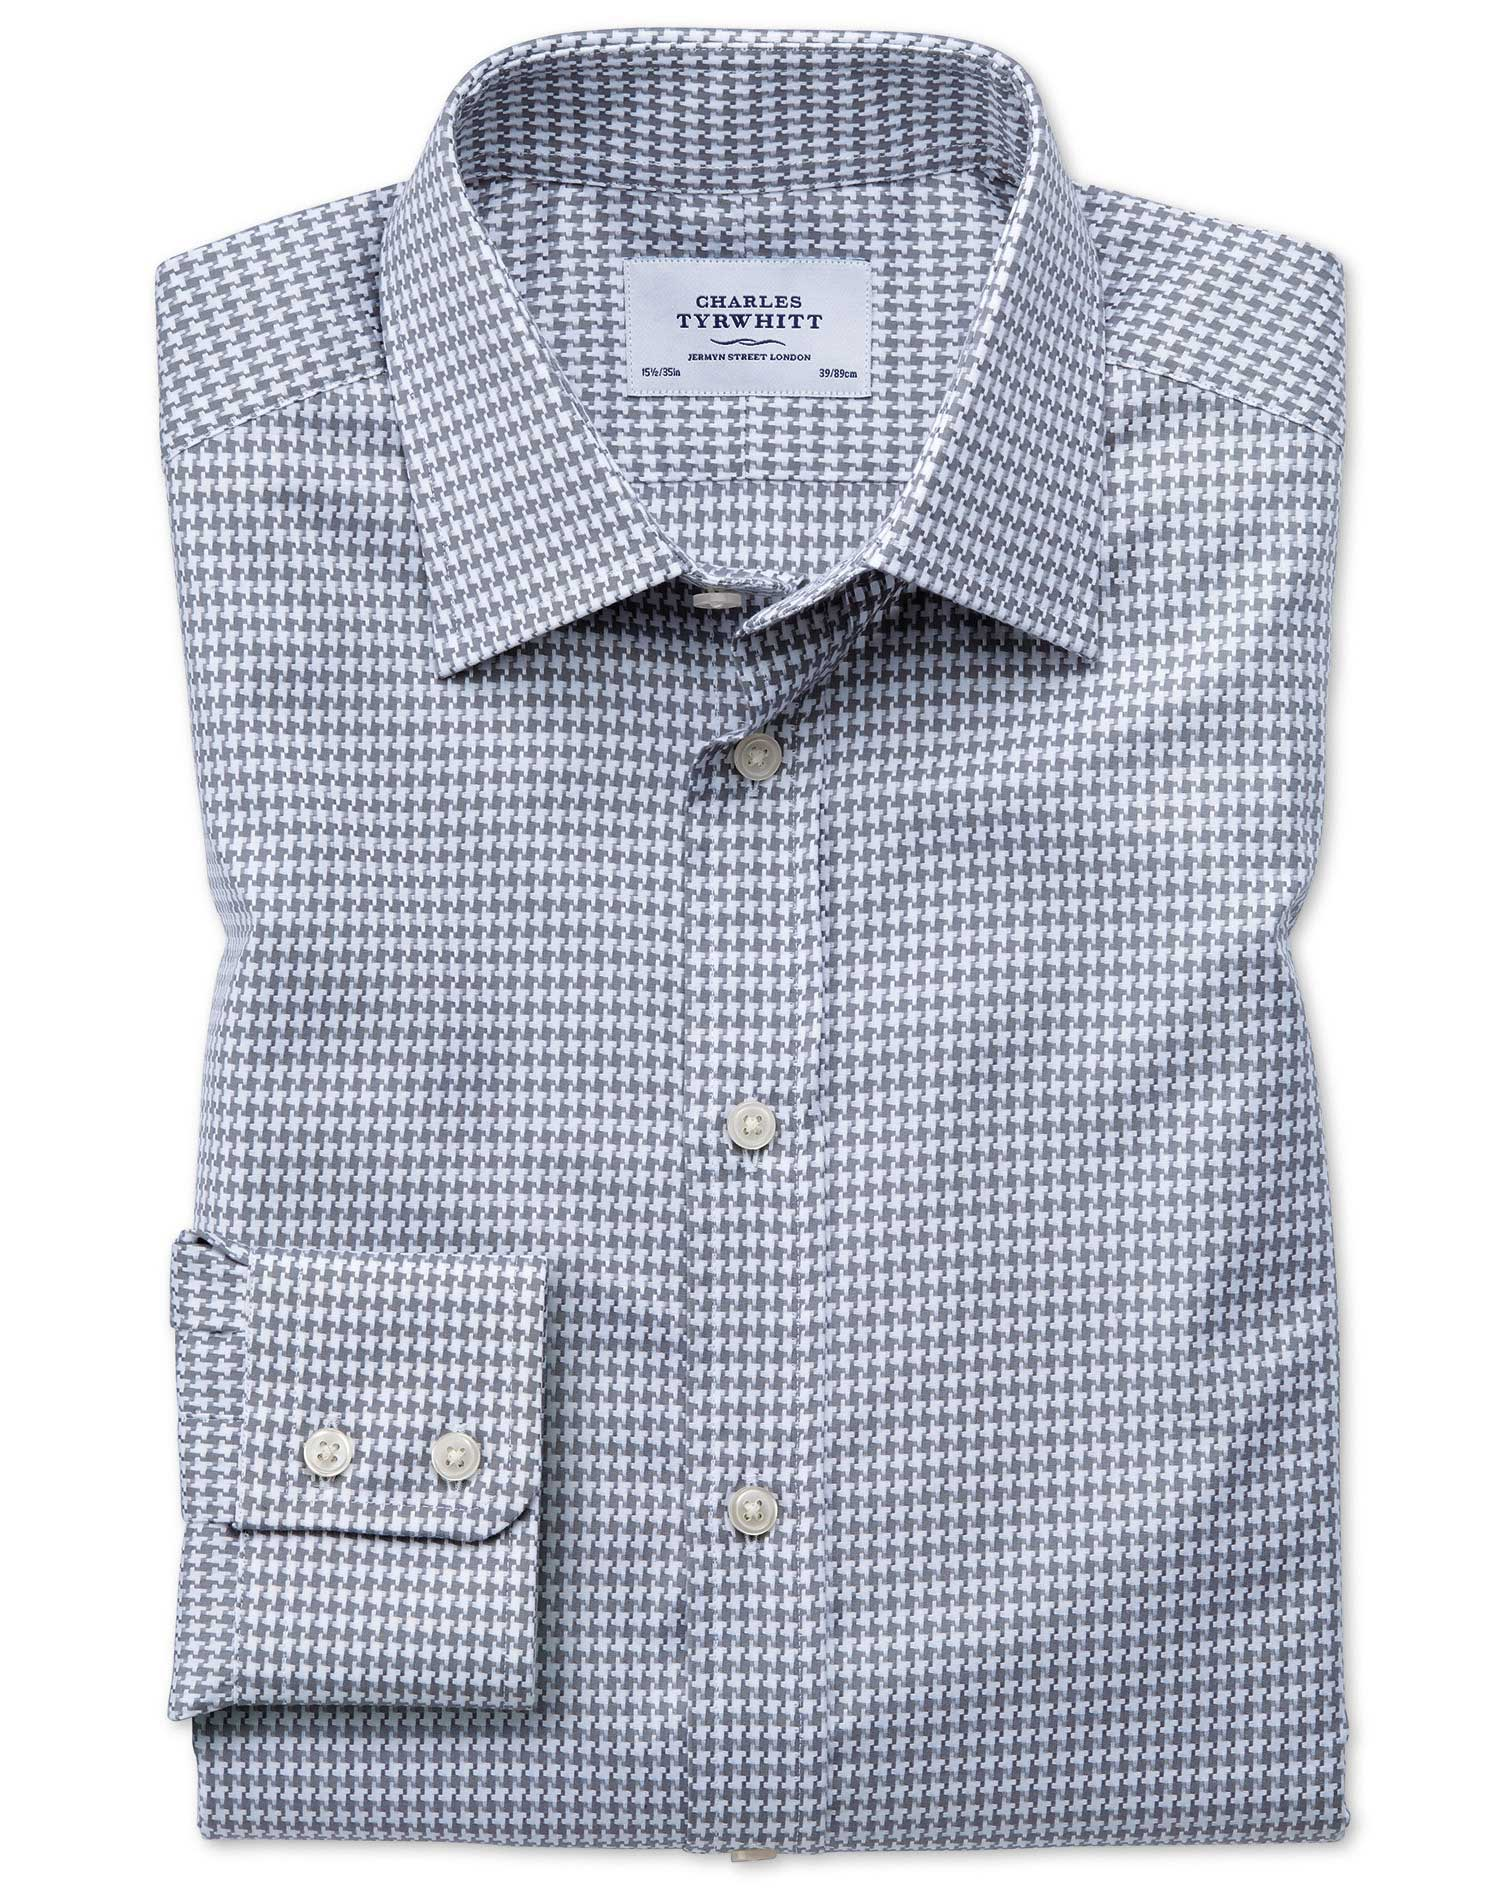 Classic Fit Large Puppytooth Light Grey Cotton Formal Shirt Single Cuff Size 17.5/34 by Charles Tyrw